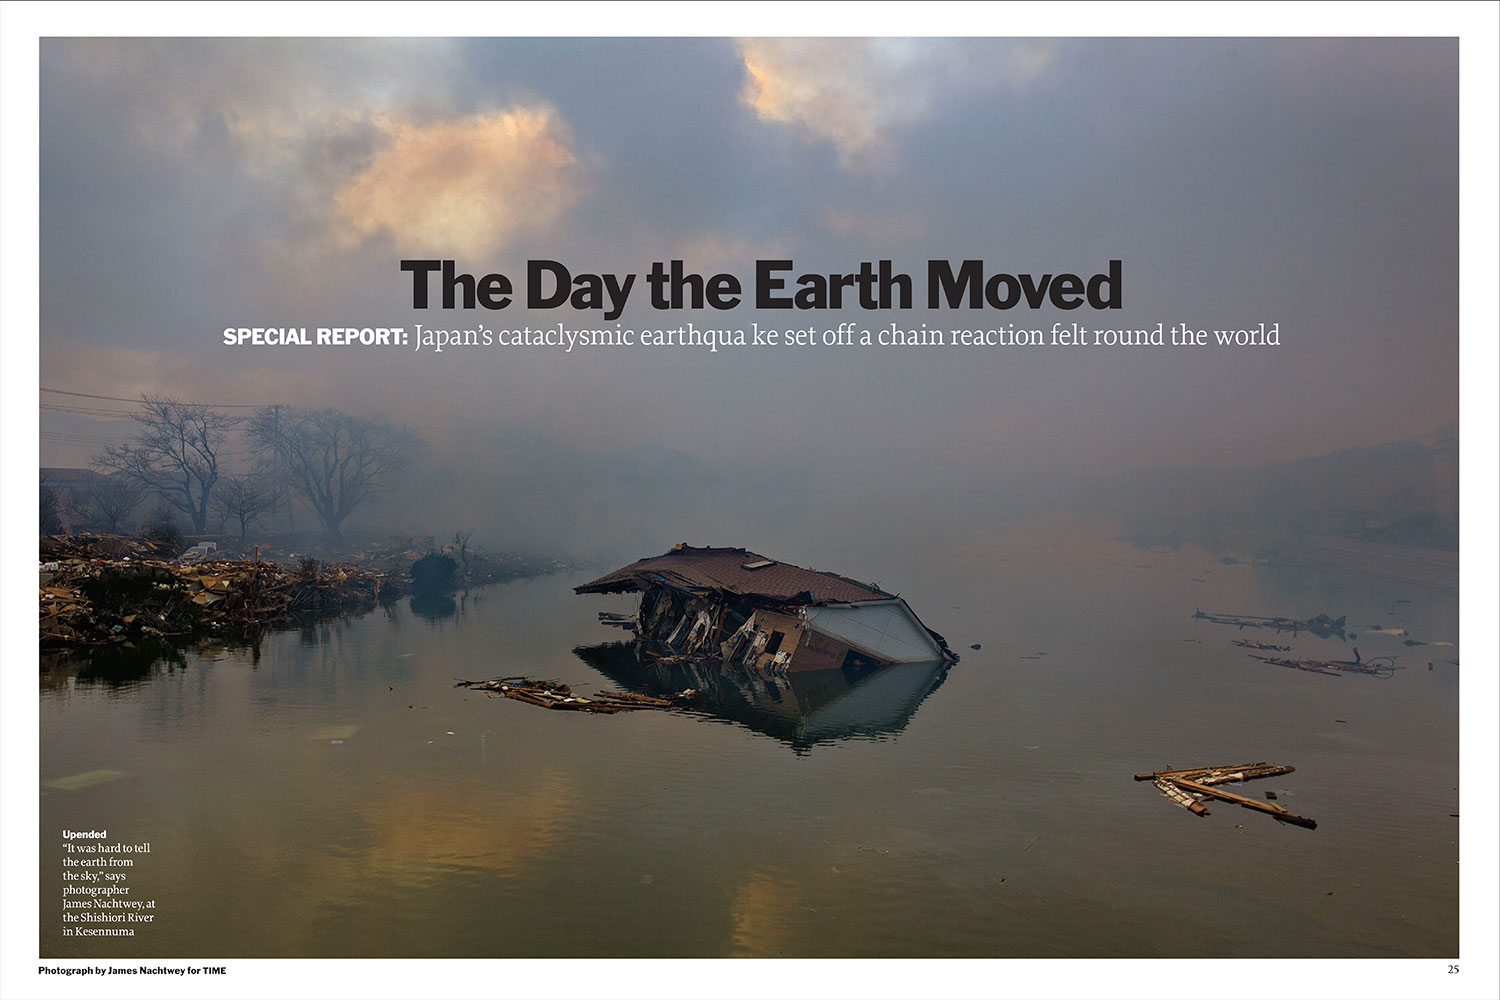 From  The Day the Earth Moved.  March 28, 2011 issue.